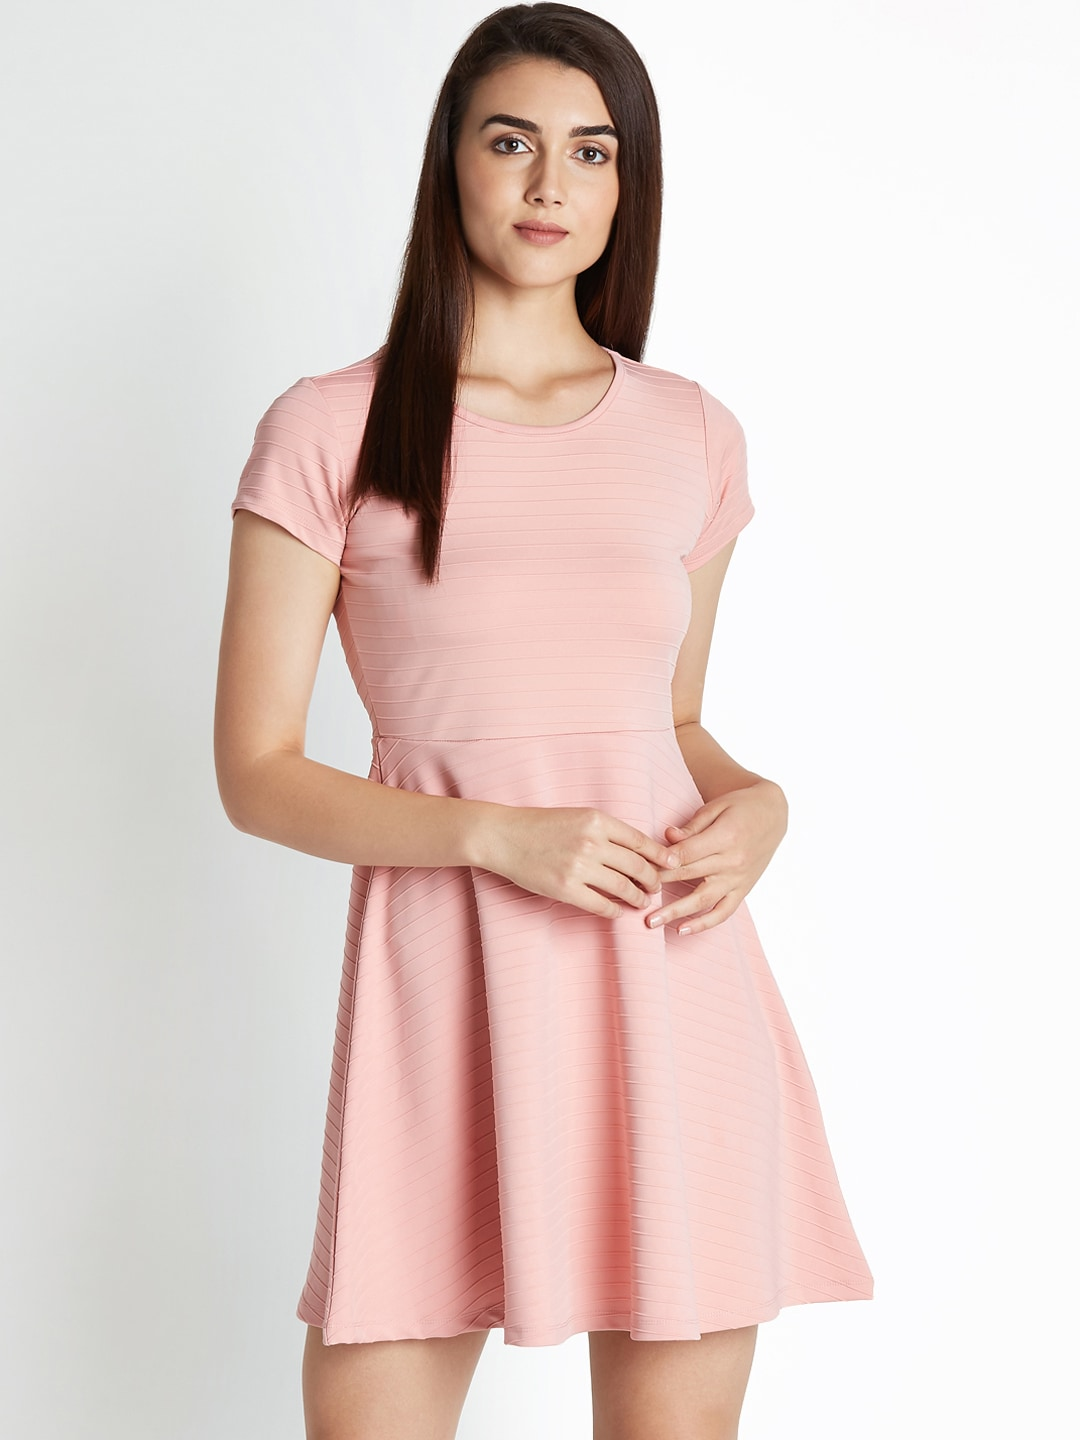 Honey By Pantaloons Online Store Shop For Honeyclothing Dress Products In India Myntra